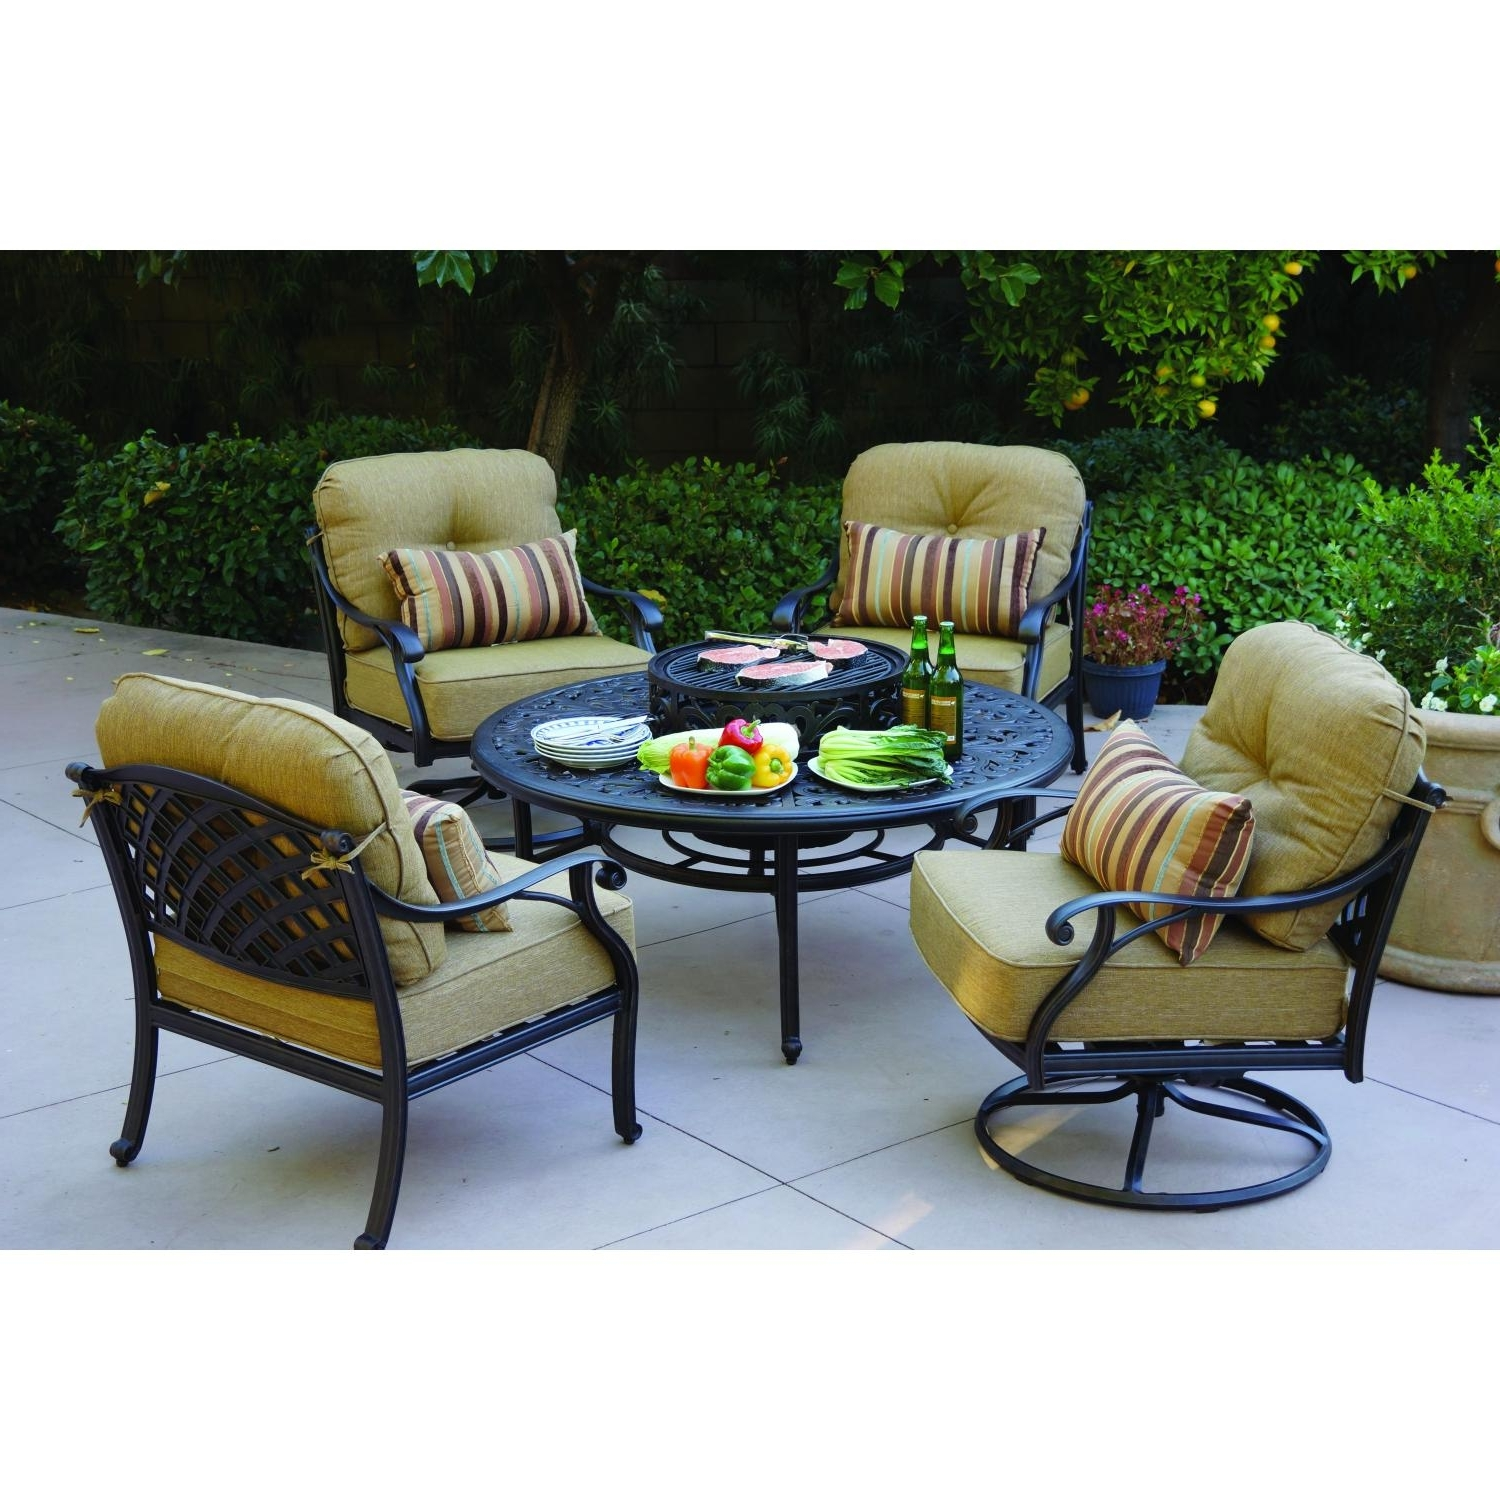 Elegant Agio Patio Furniture Fire Pit Conversation Sets Mexican Fire Within Well Liked Patio Conversation Sets With Fire Pit Table (View 11 of 15)